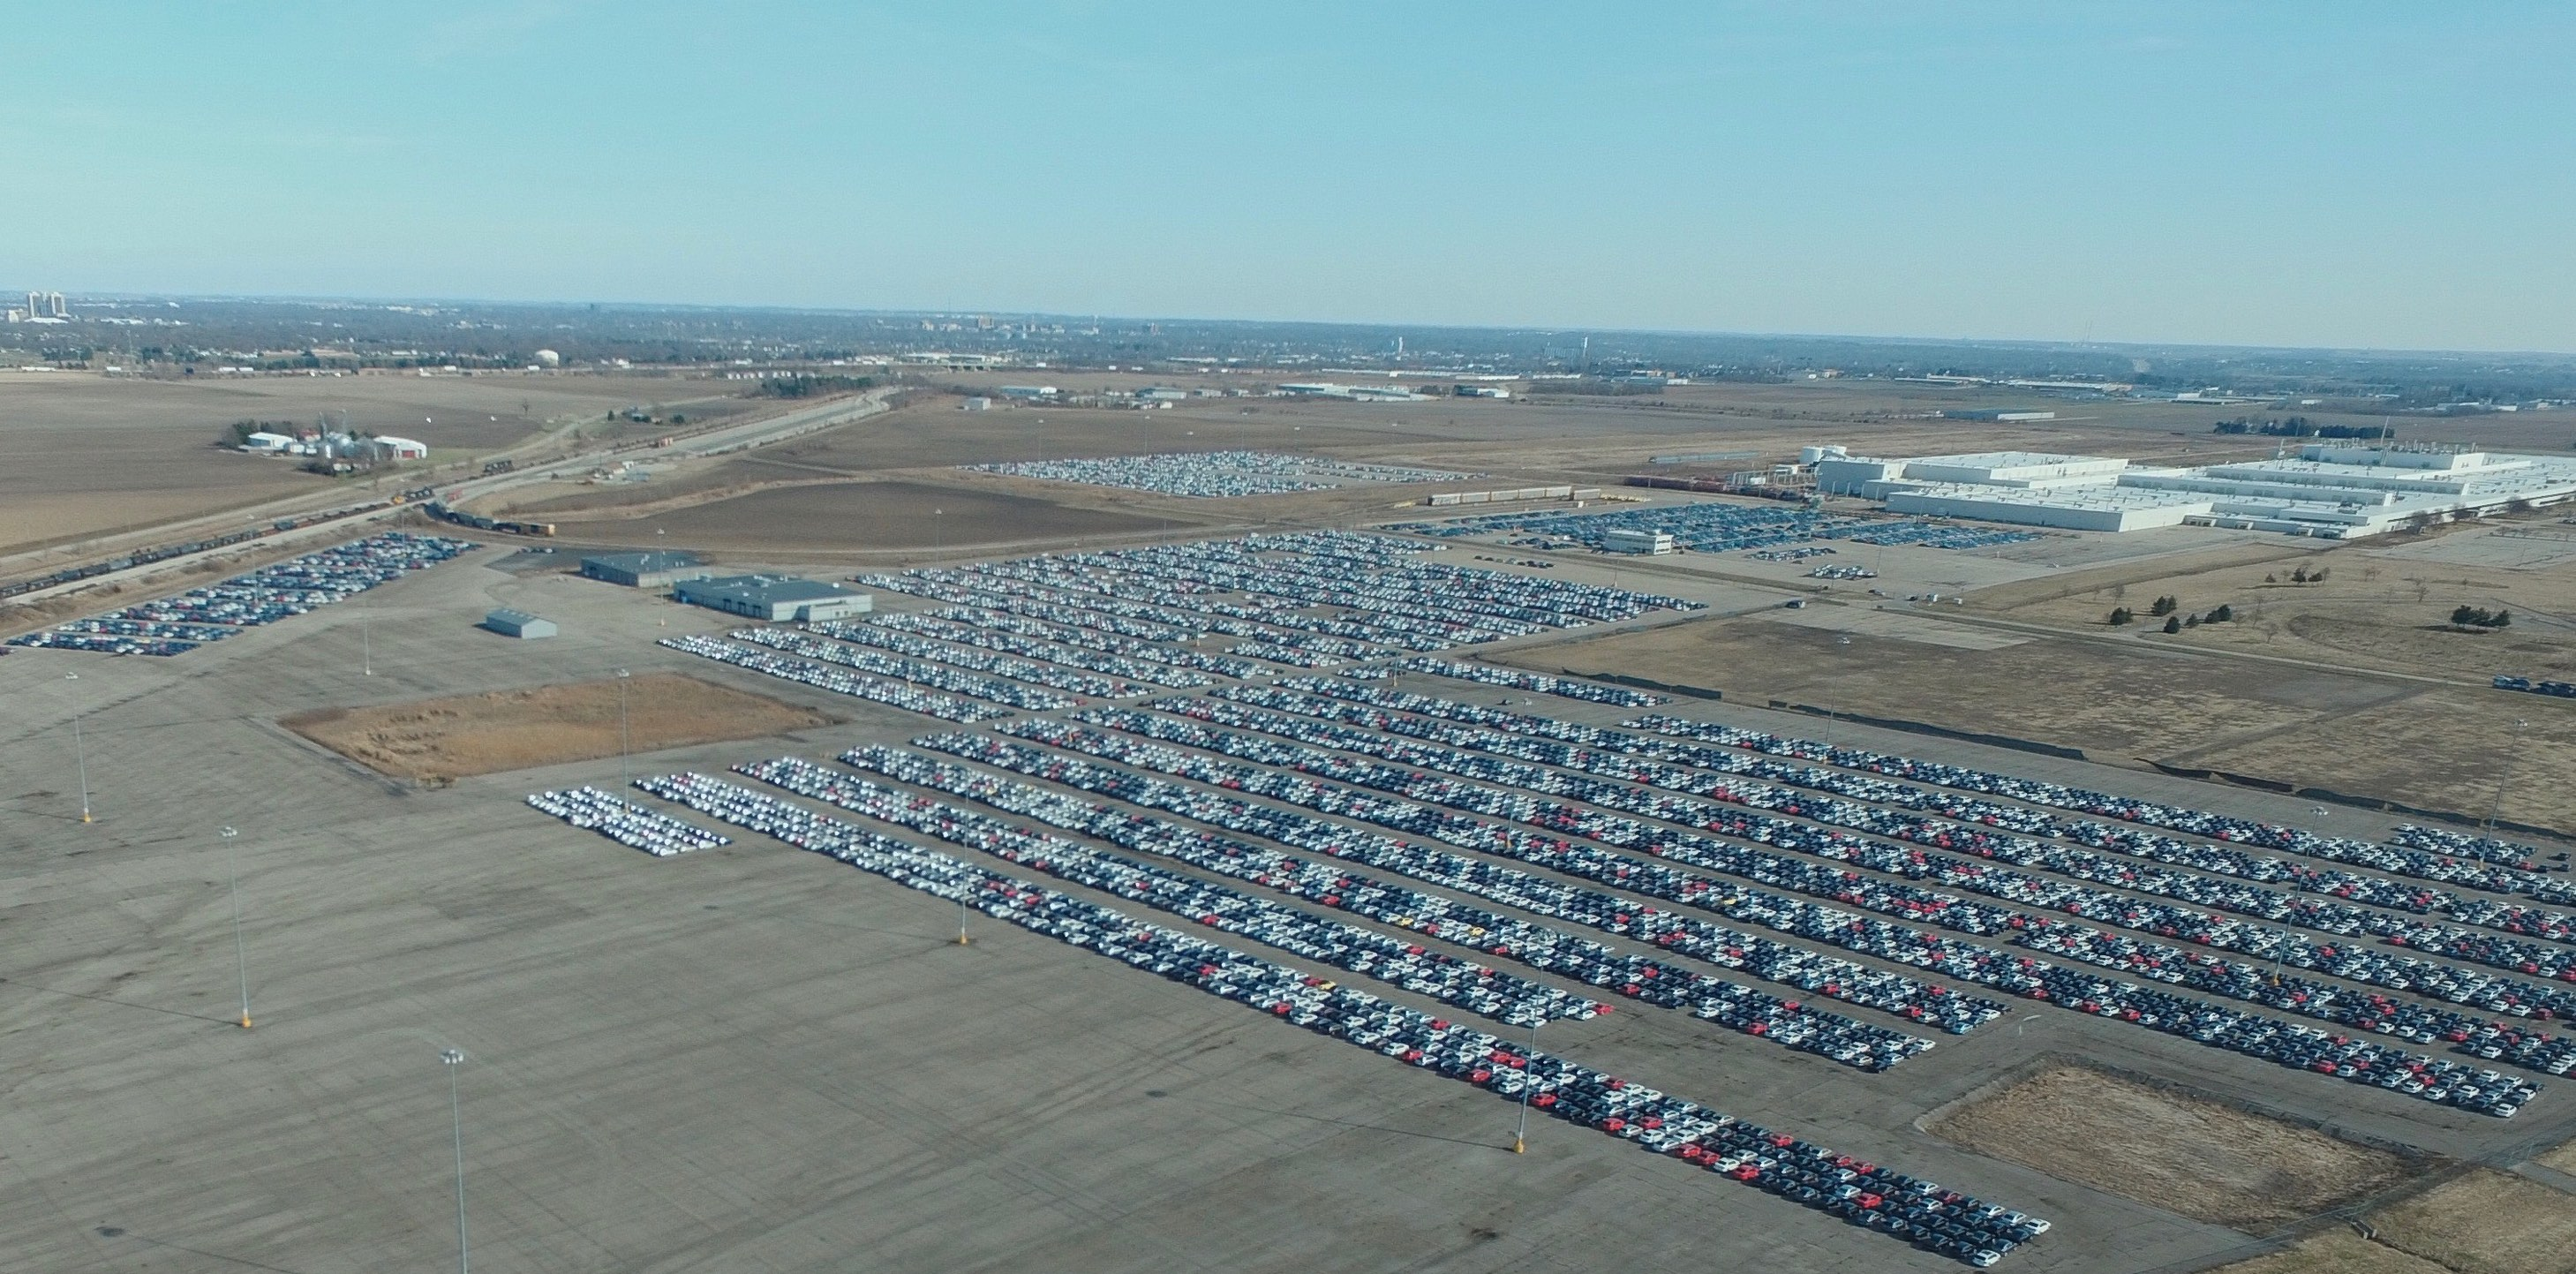 Thousands of VW Diesels being Stored